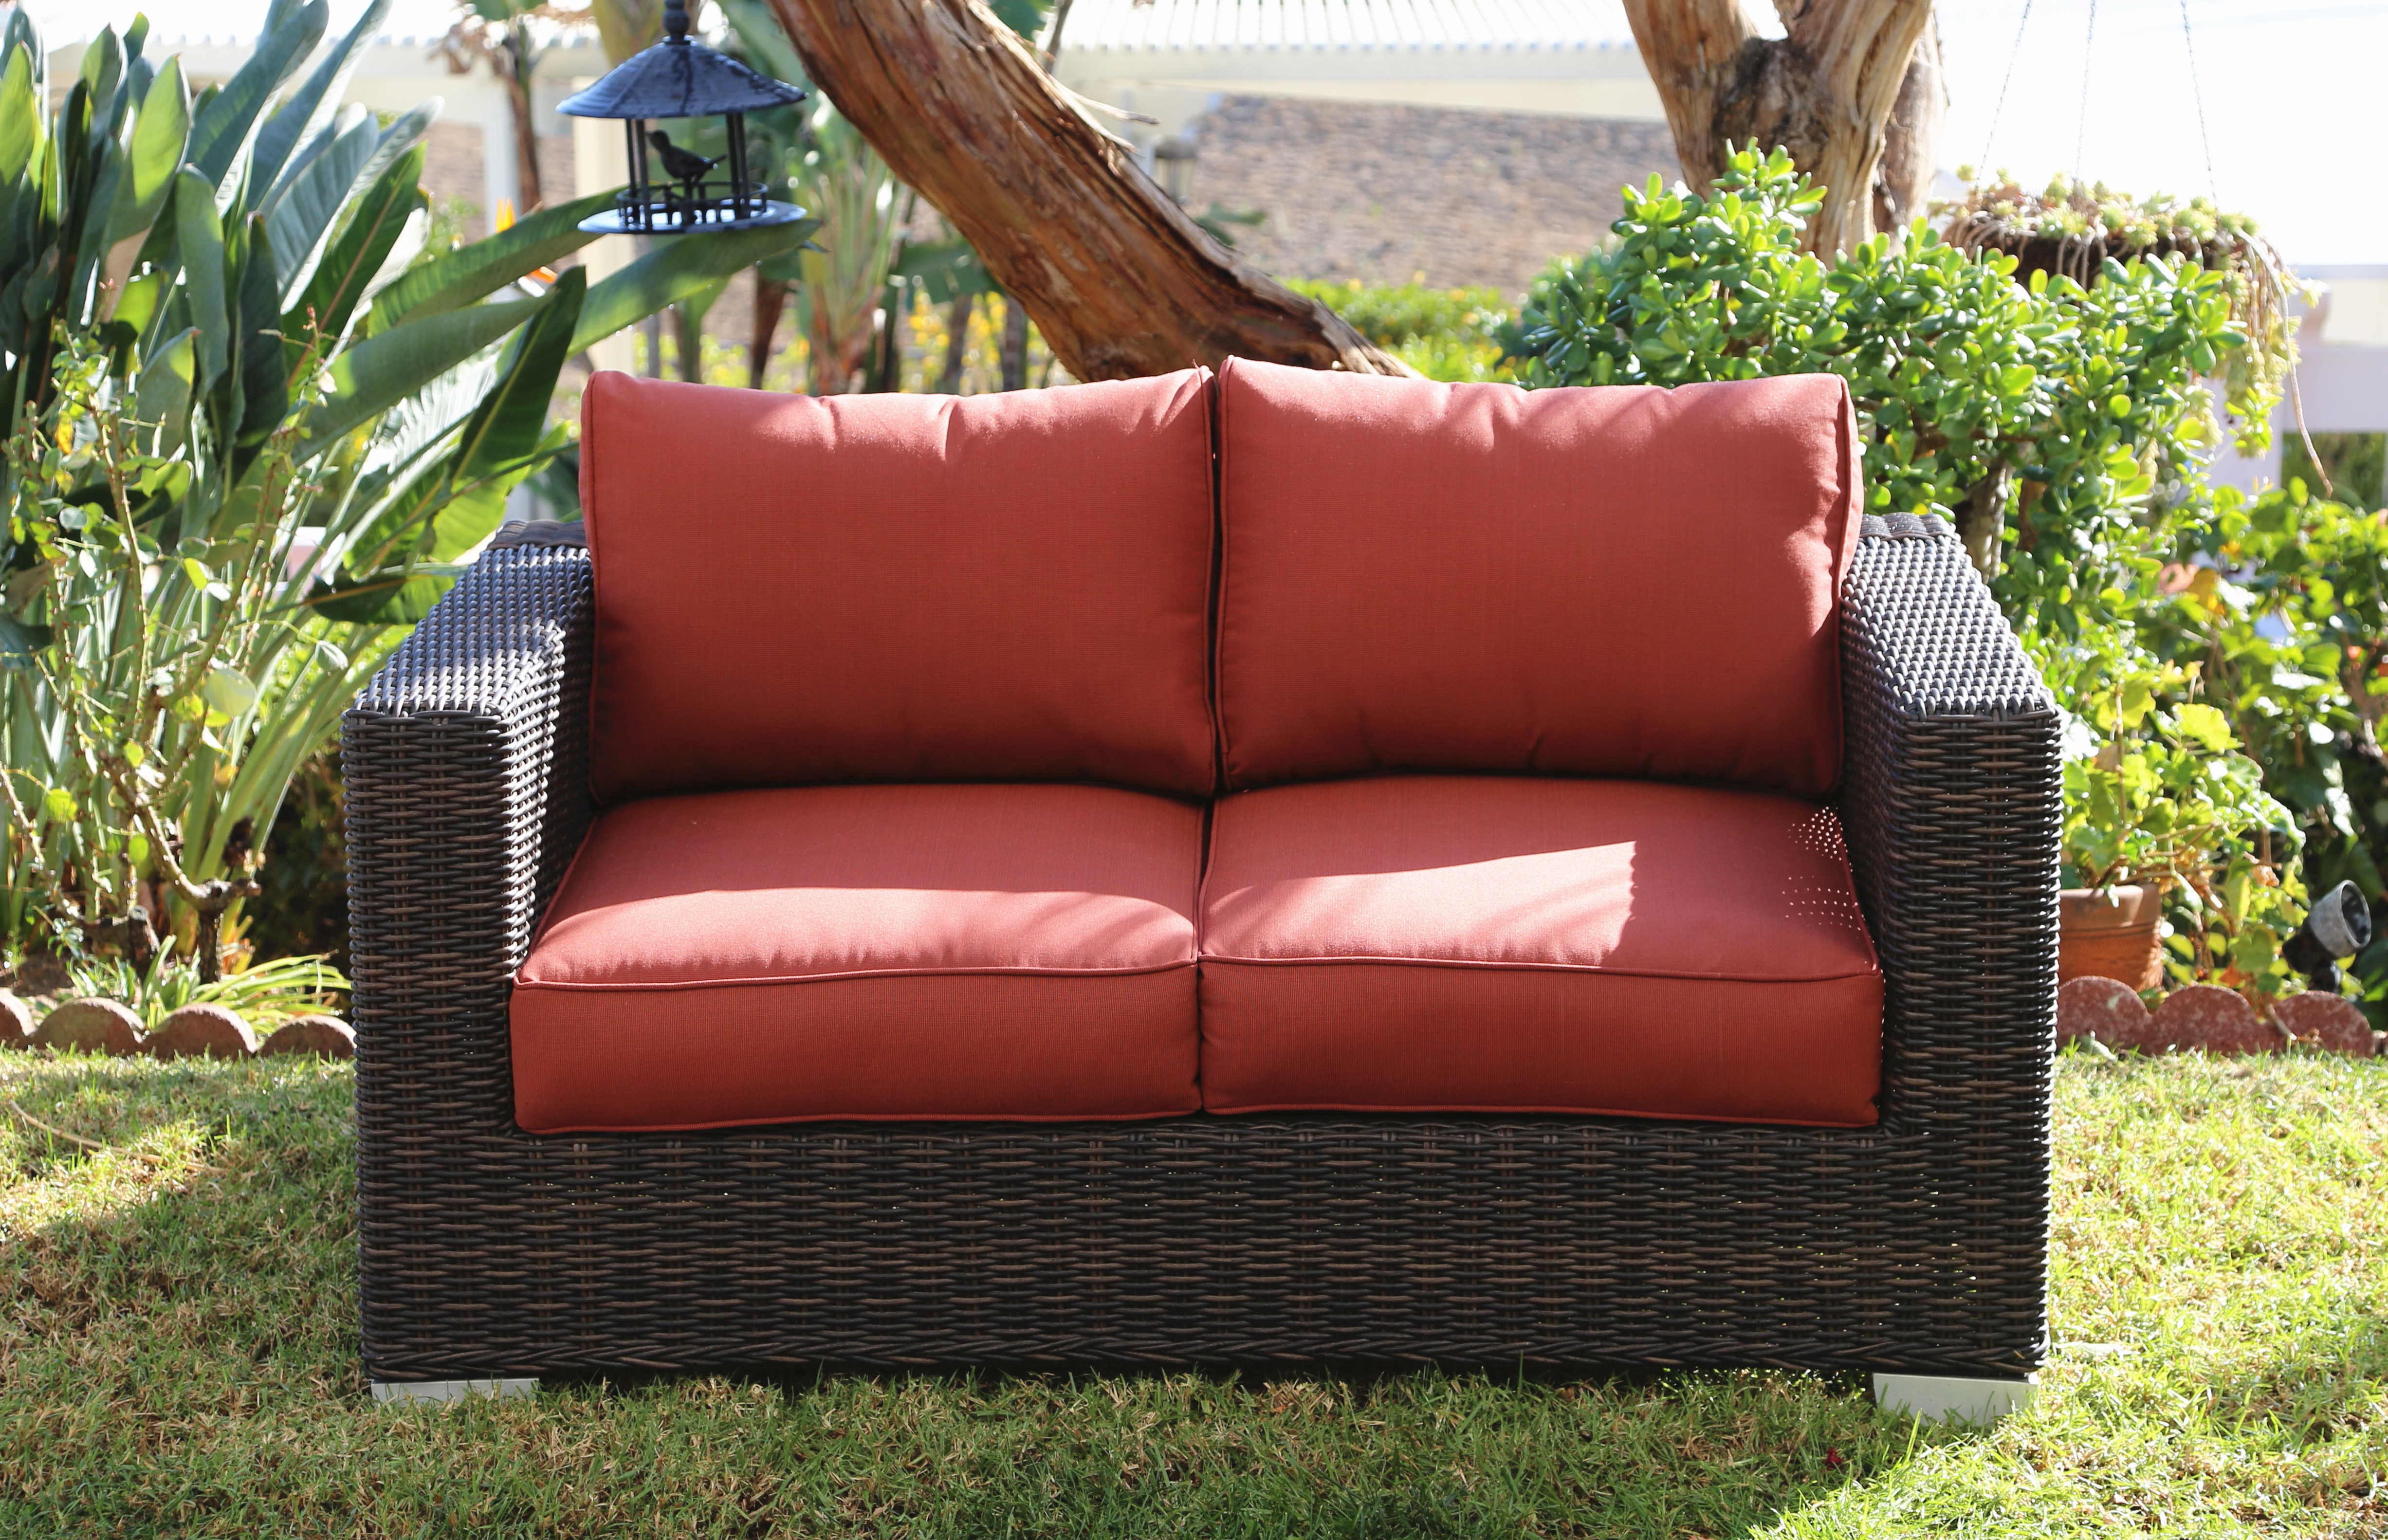 Huddleson Loveseats With Cushion Pertaining To Best And Newest Fults Loveseat With Cushion (View 12 of 20)